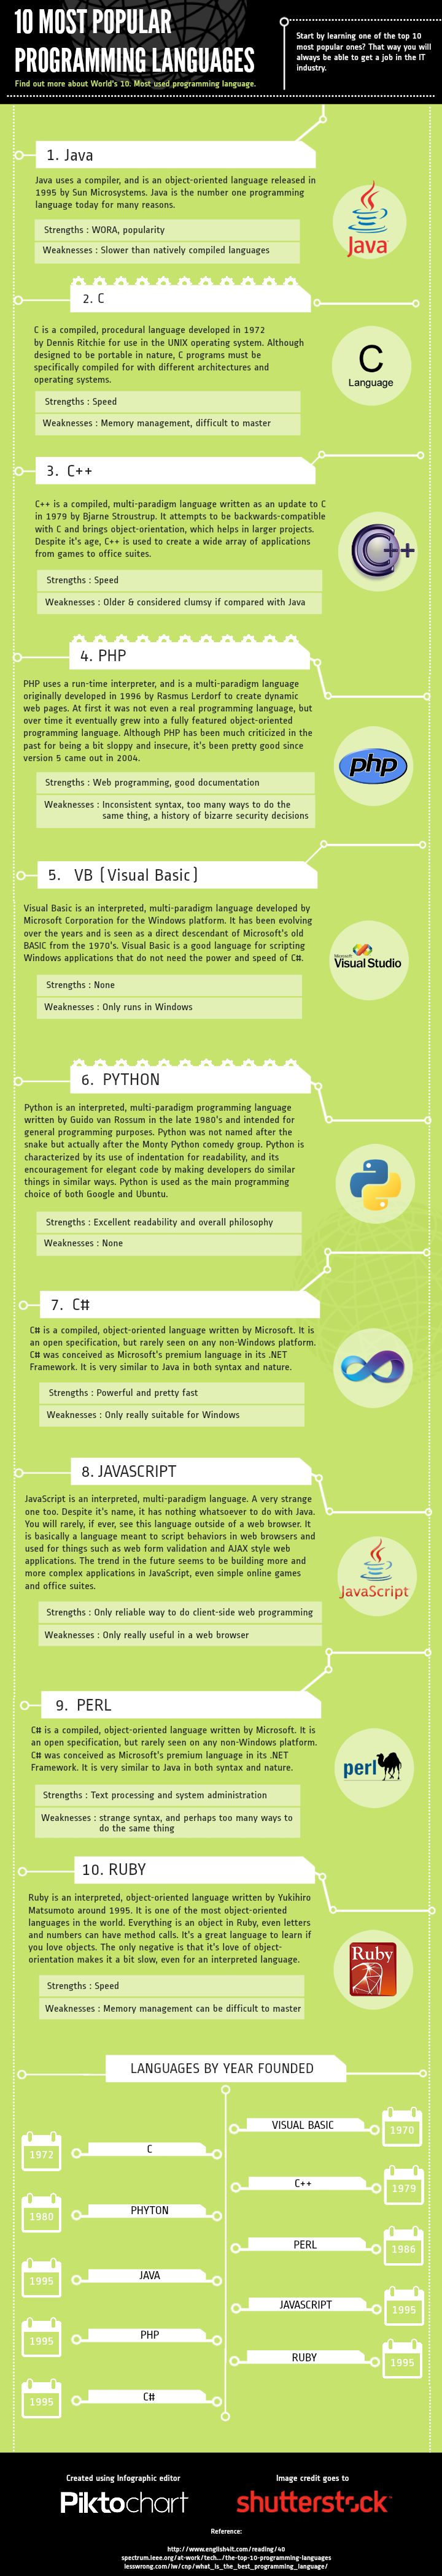 Computer Science: Programming Languages - edu.gcfglobal.org